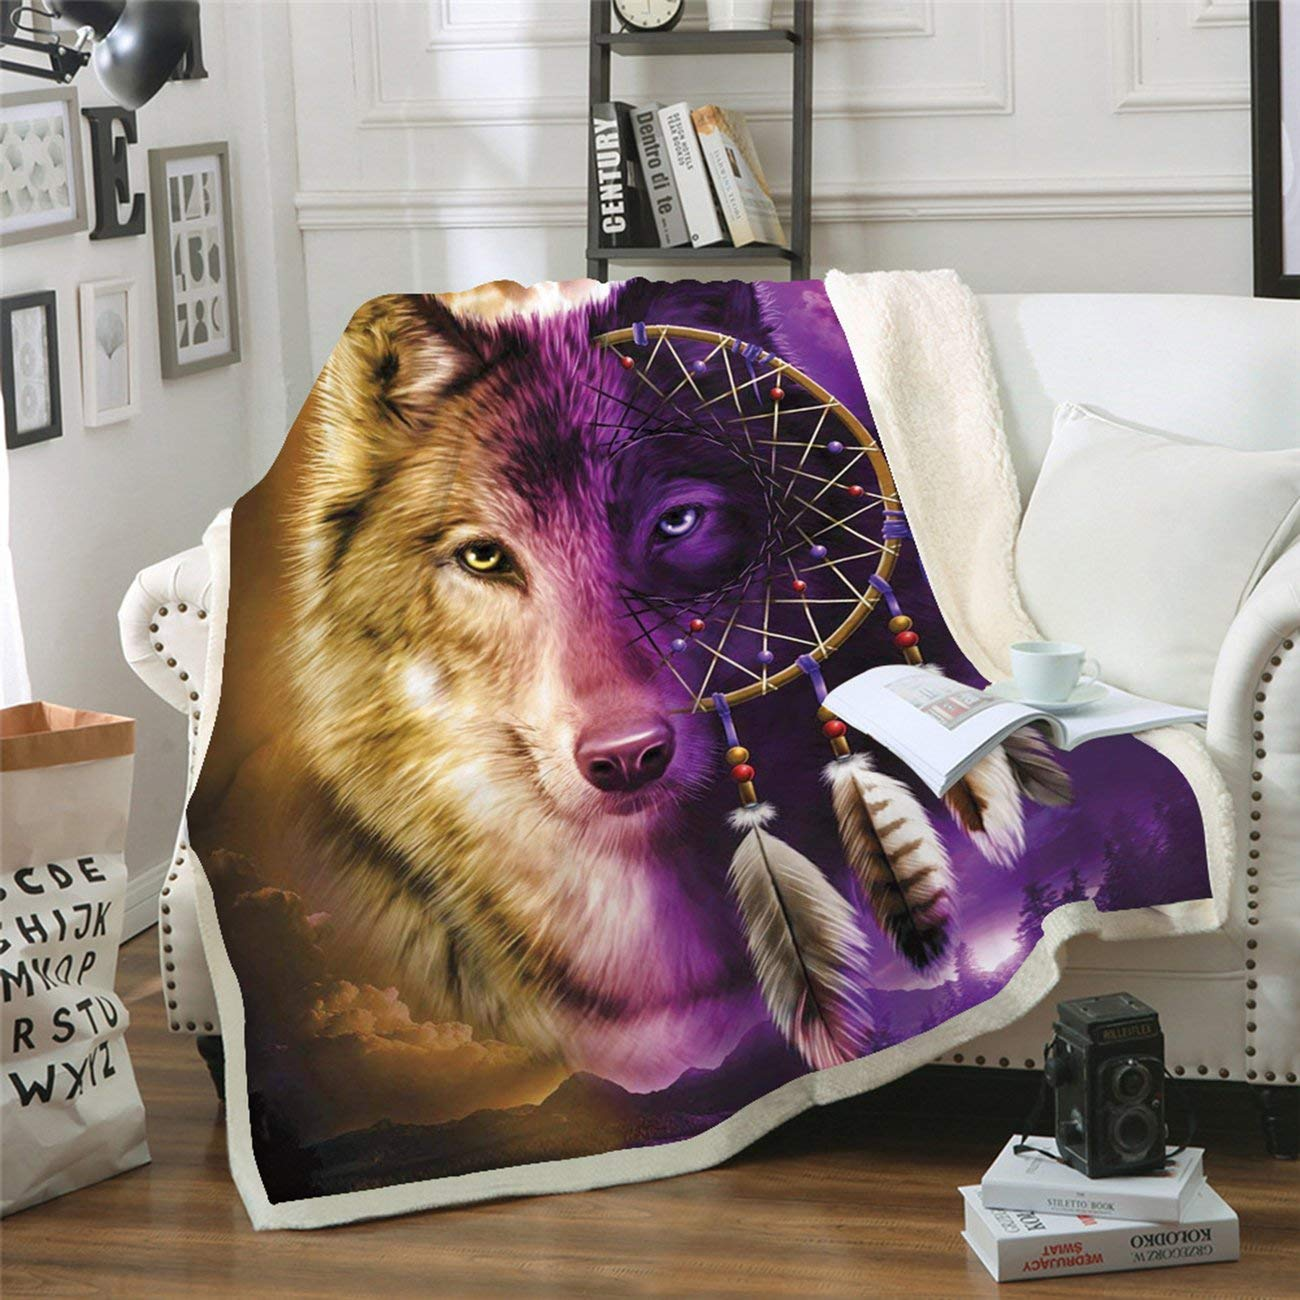 Square Carpet Wolf Series MT0019 Thickened Double-Layer Plush Blanket Home Sofa Bedding Office Car Blanket Home Textile